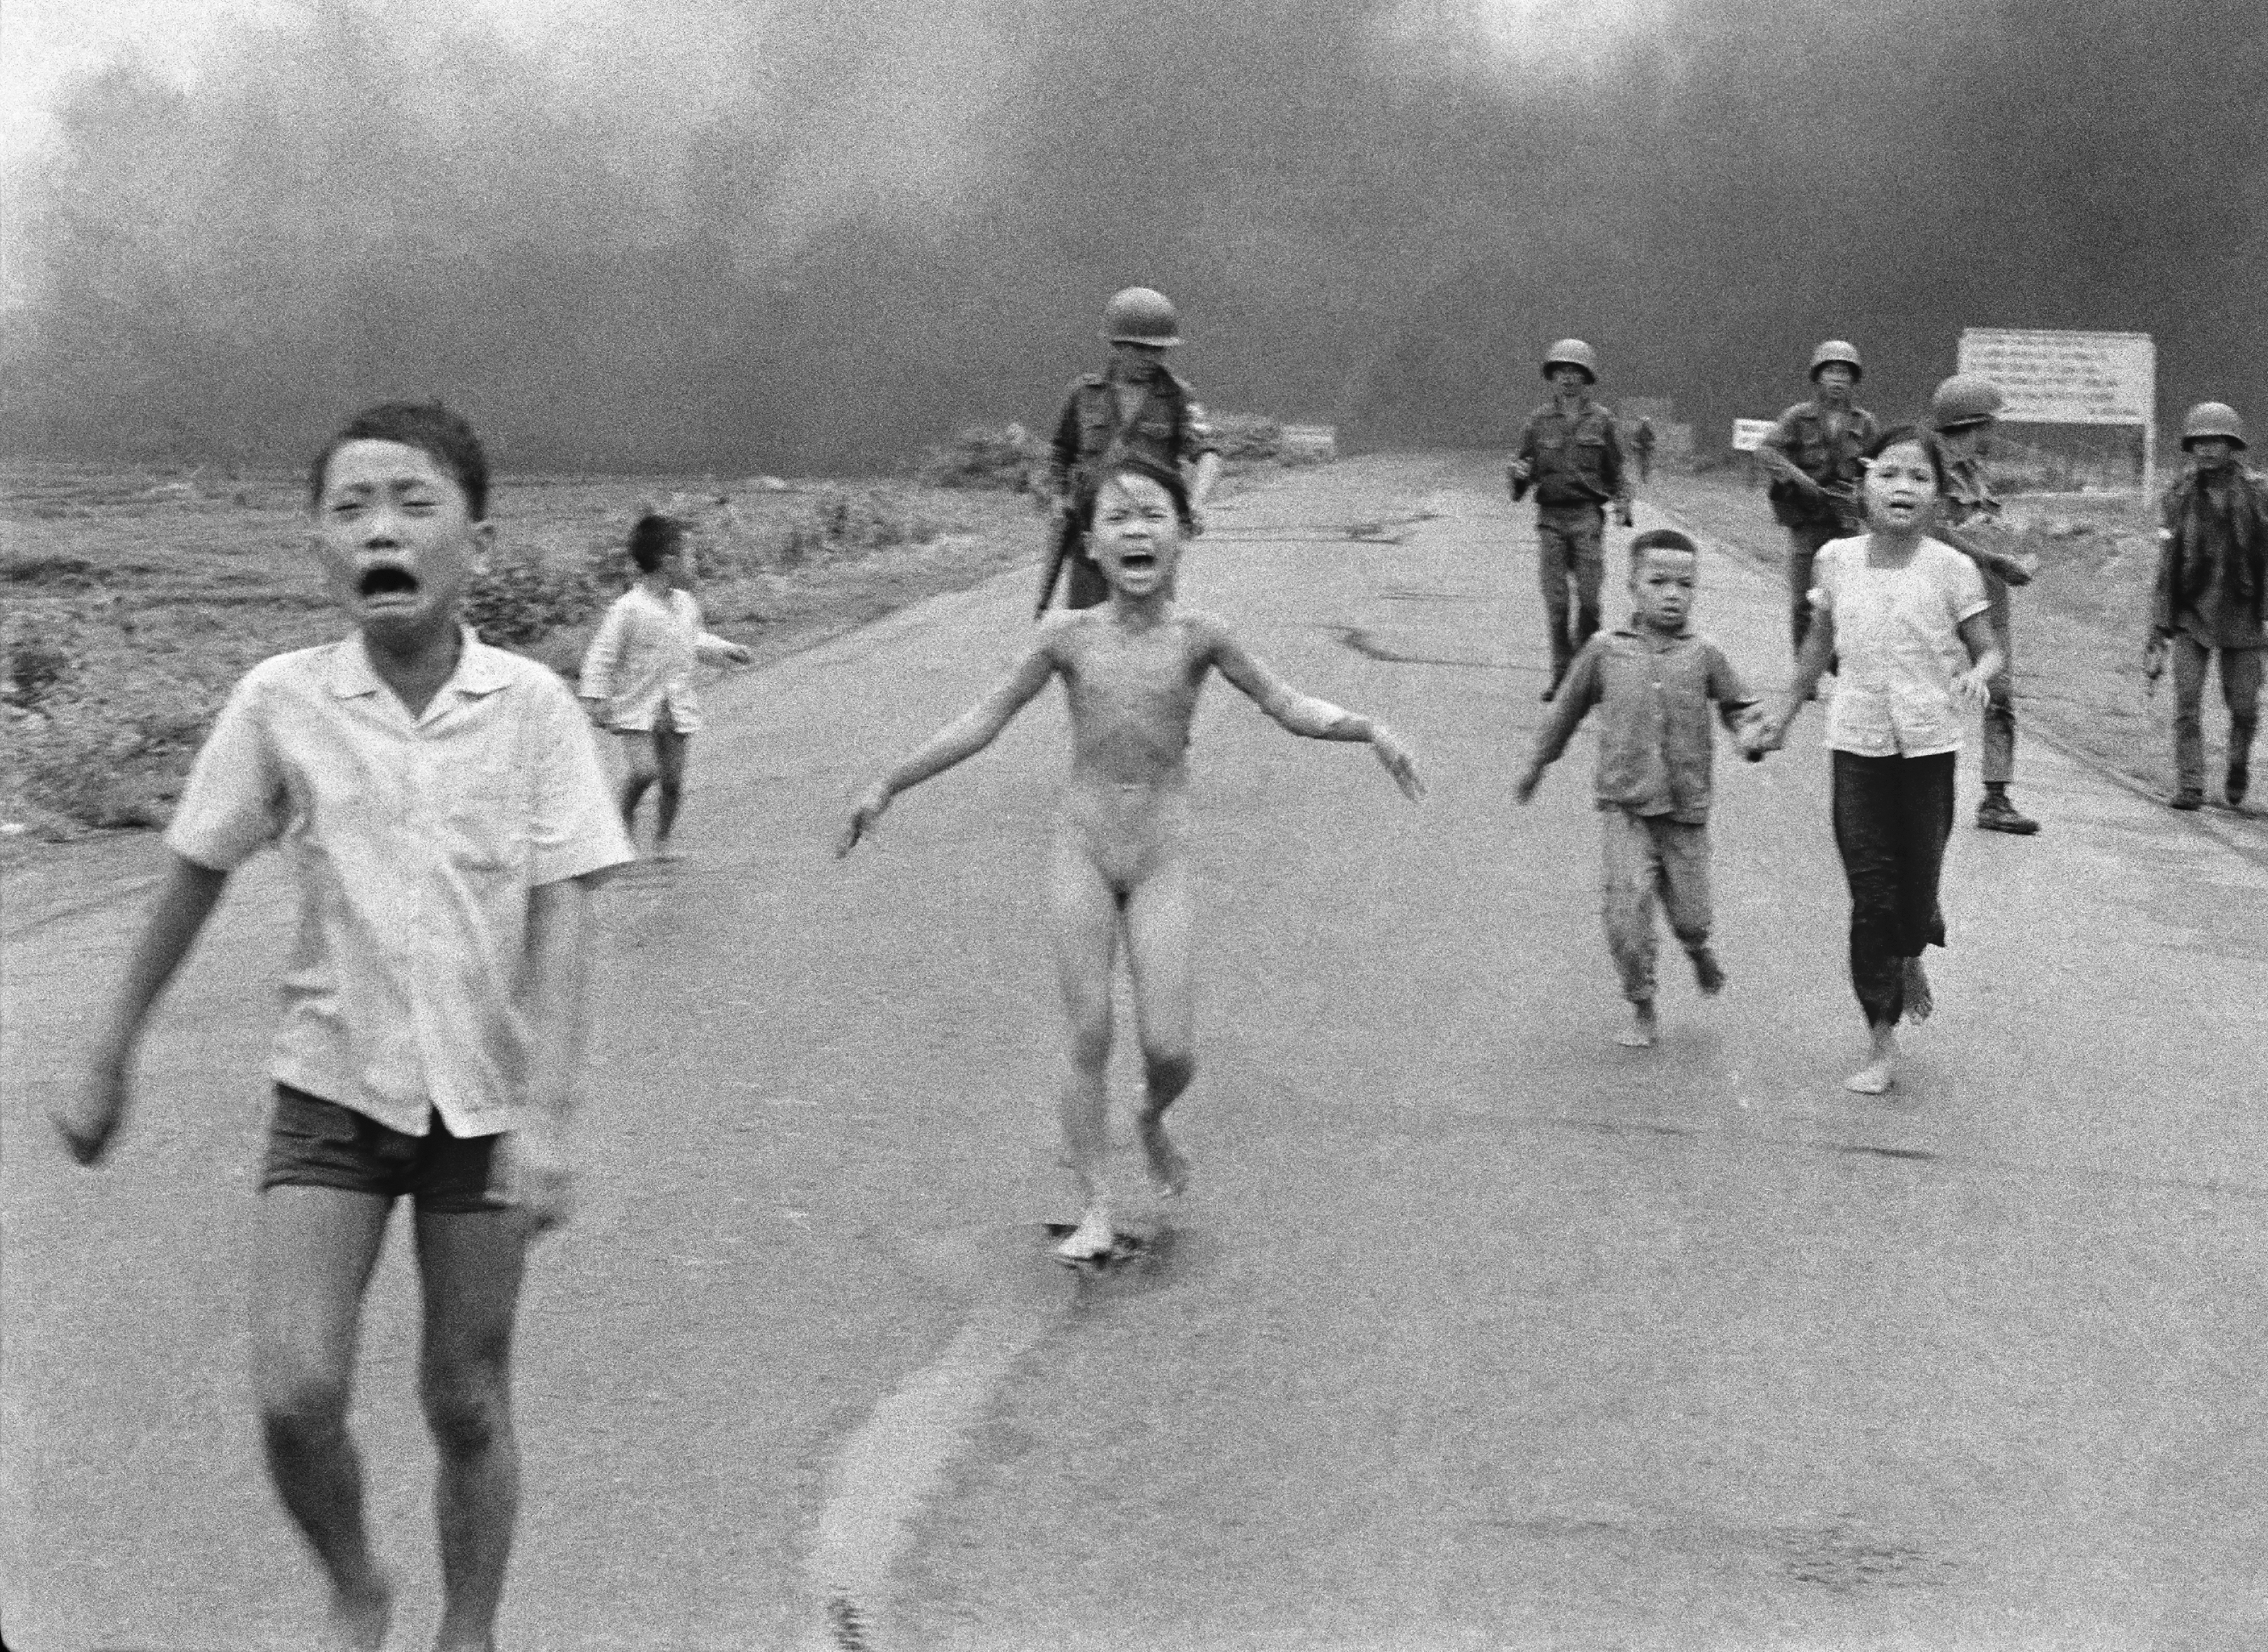 South Vietnamese forces follow after terrified children, including 9-year-old Kim Phuc, center, as they run down Route 1 near Trang Bang after an aerial napalm attack against suspected Viet Cong hiding places on June 8, 1972. Kim Phuc had ripped off her burning clothes after a South Vietnamese plane mistakenly dropped its incendiary bombs on South Vietnamese troops and civilians. The young girl is accompanied by her injured brothers and cousins; behind them are Vietnamese soldiers of the 25th Division. (AP Photo/Nick Ut)